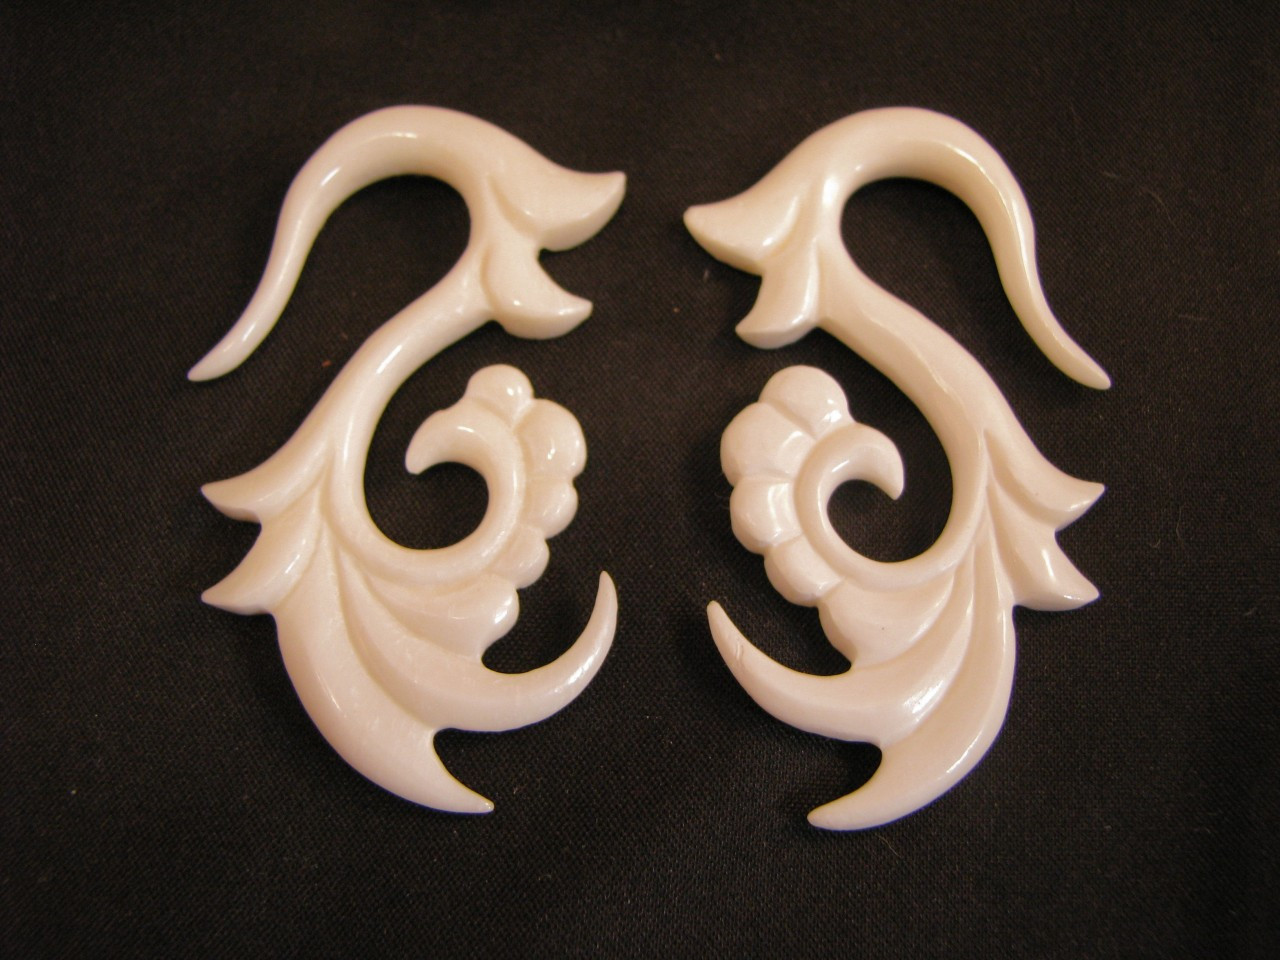 Jasmine Hand Carved Bone Hanging Ear Gauges 12g 0g White Spiral Earrings For Stretched Piercings Avaia Artistic Jewelry